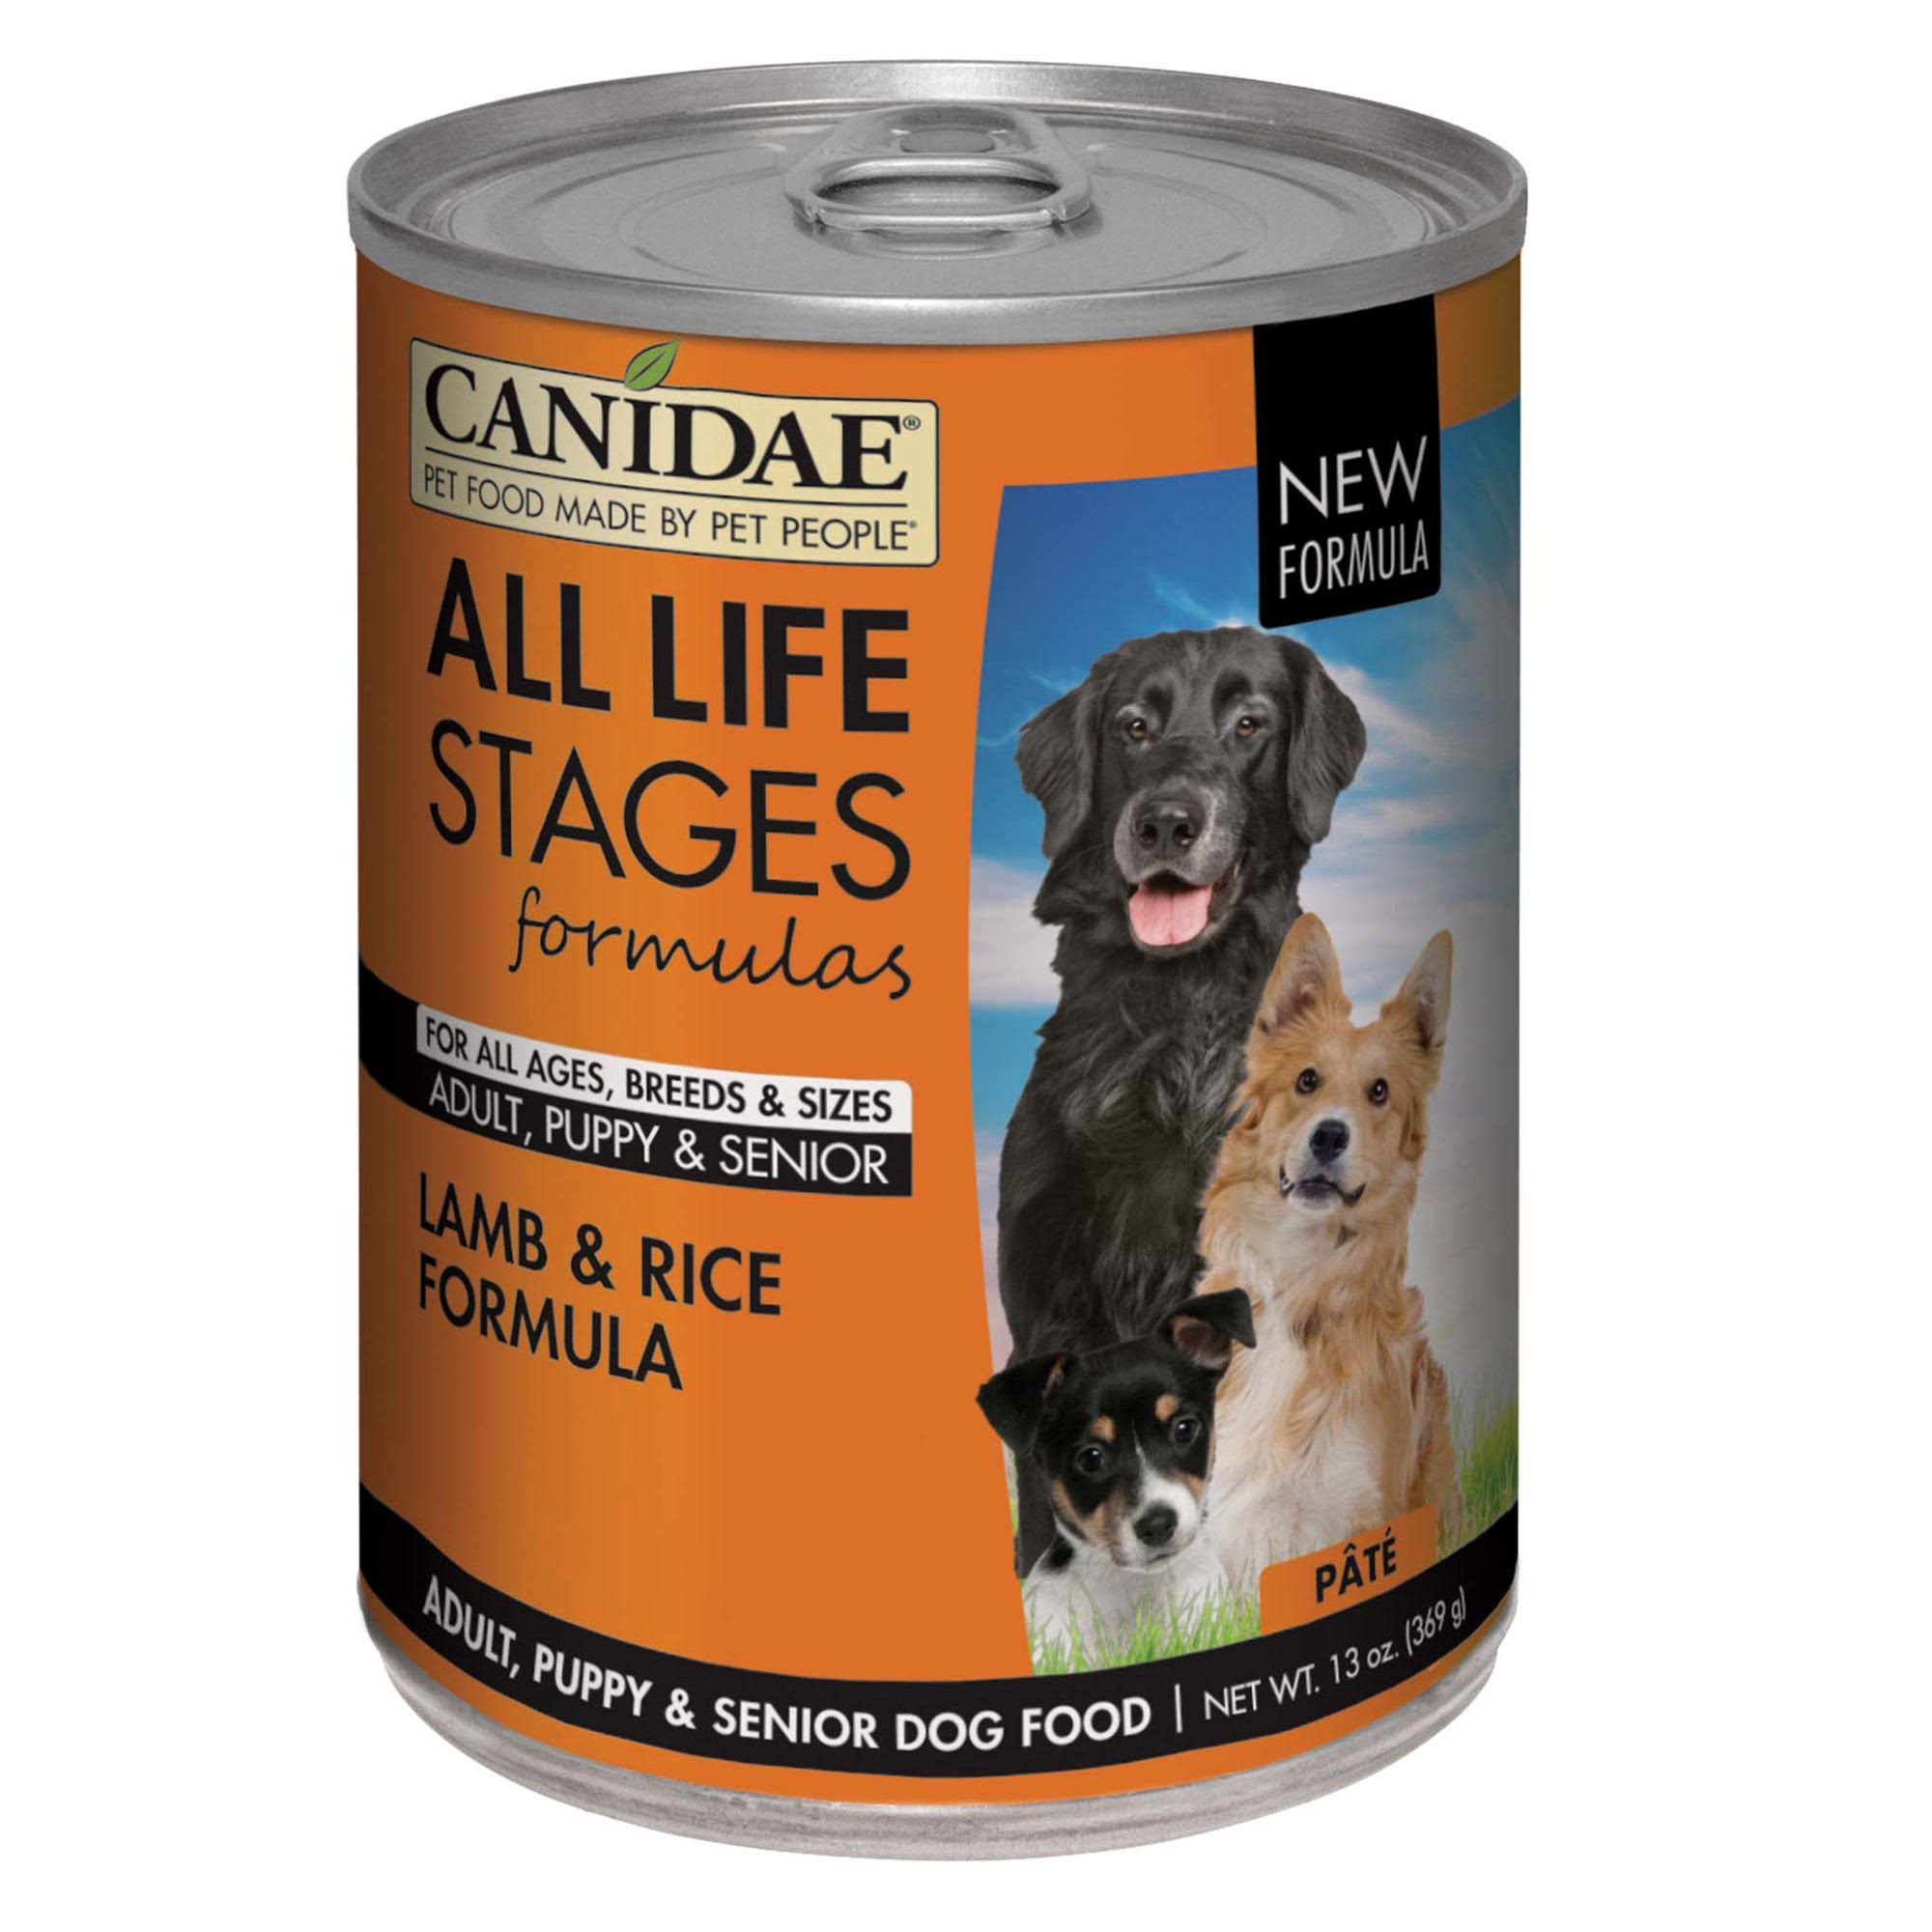 Canidae All Life Stages Dog Wet Food - Lamb & Rice, 369g